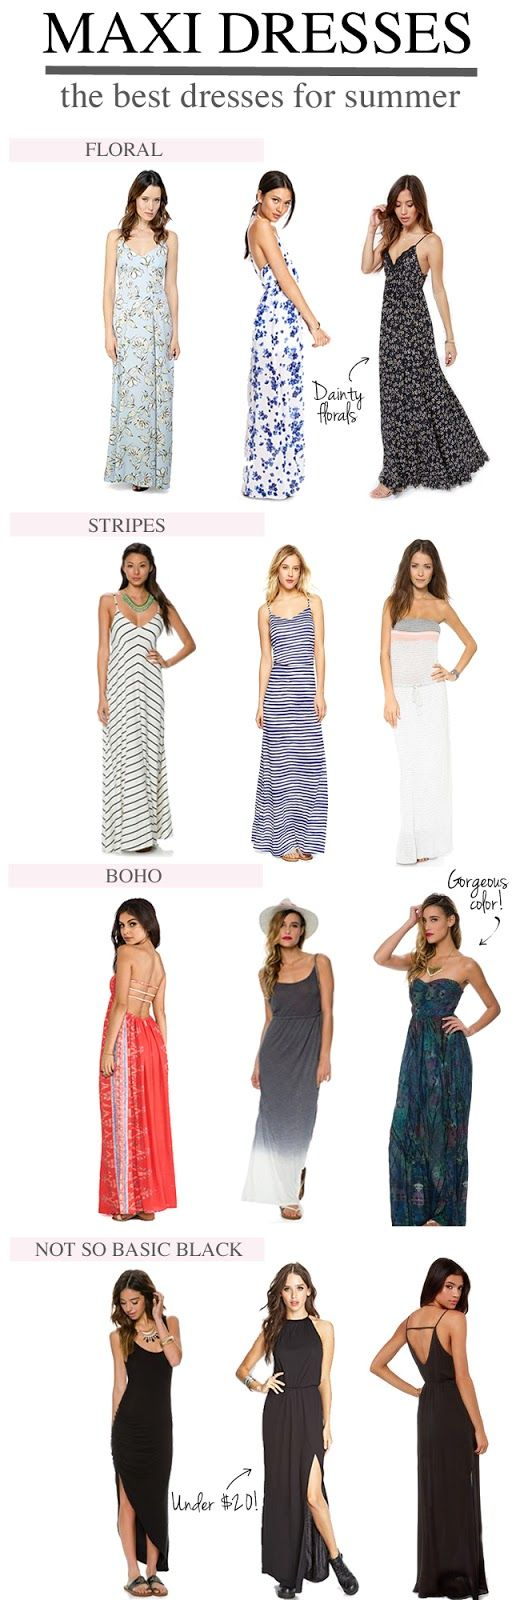 The Best Maxi Dresses For Summer